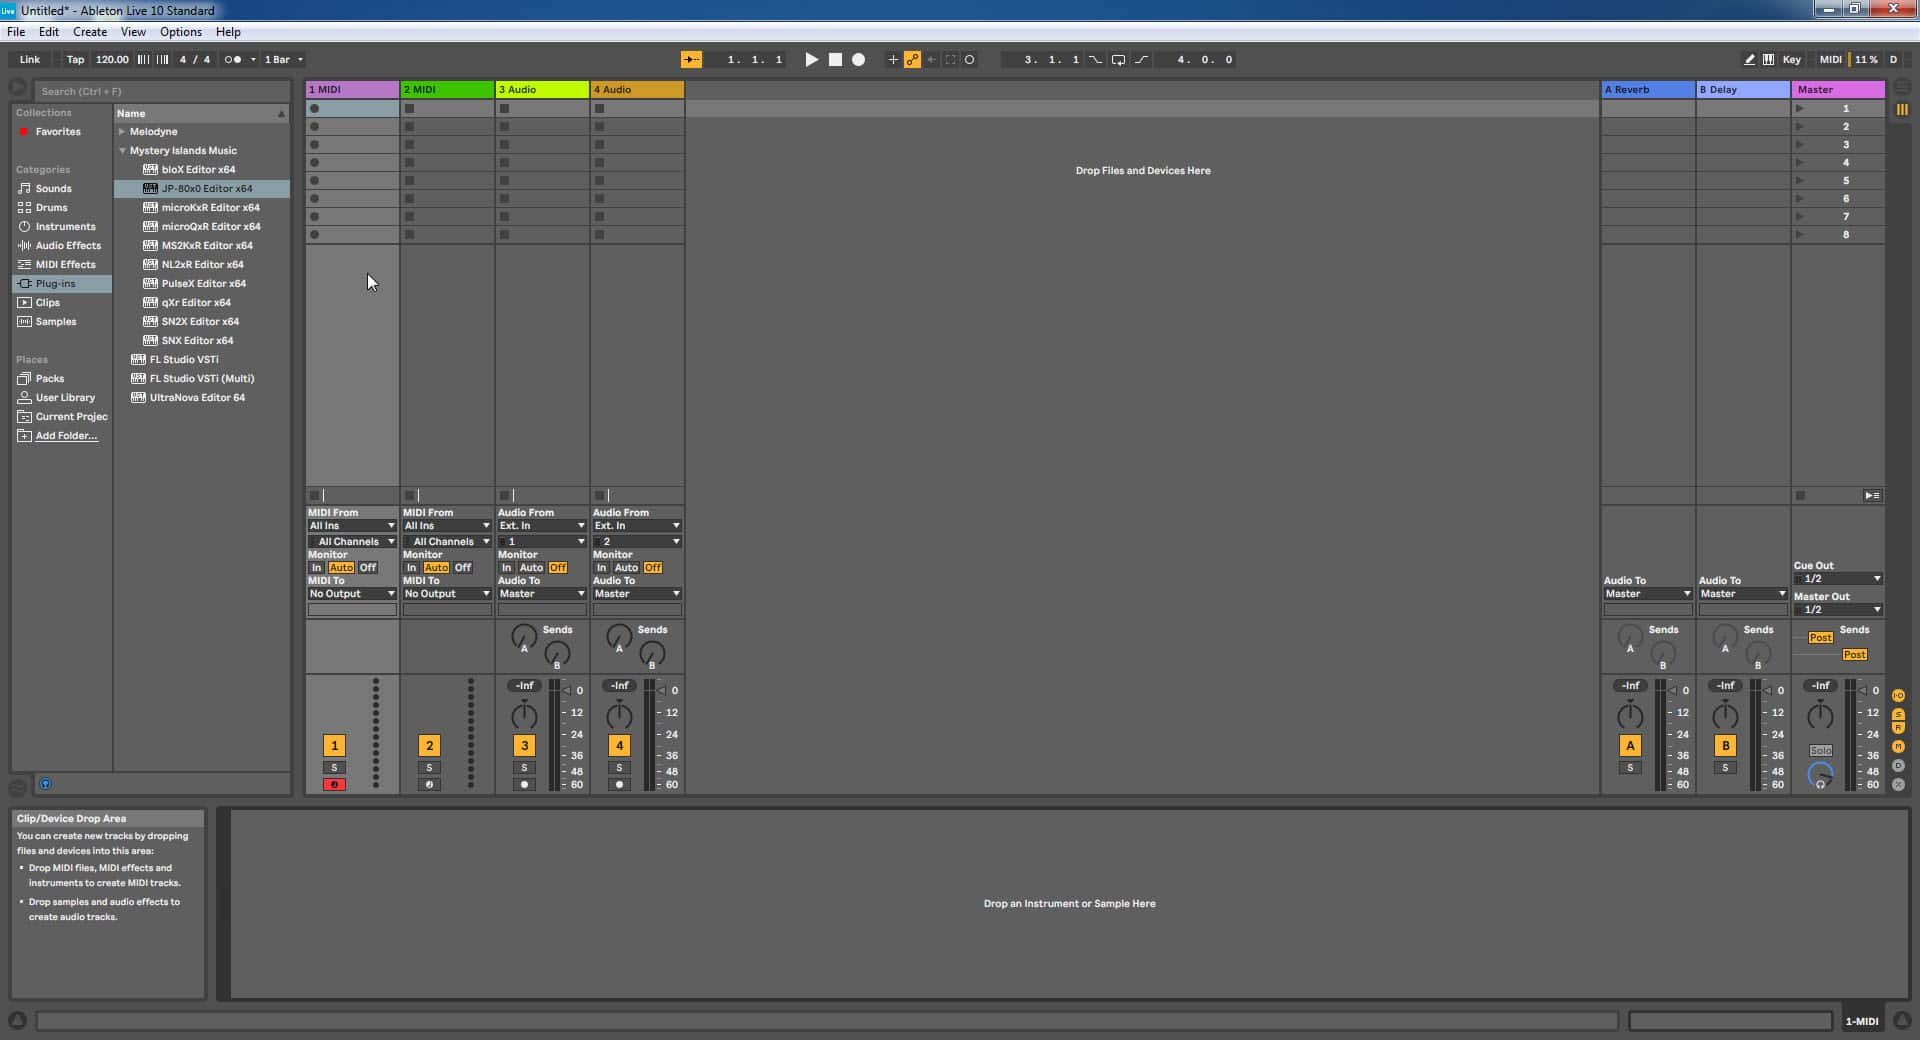 Ableton Live Config - Drag the Plug-in to New Track